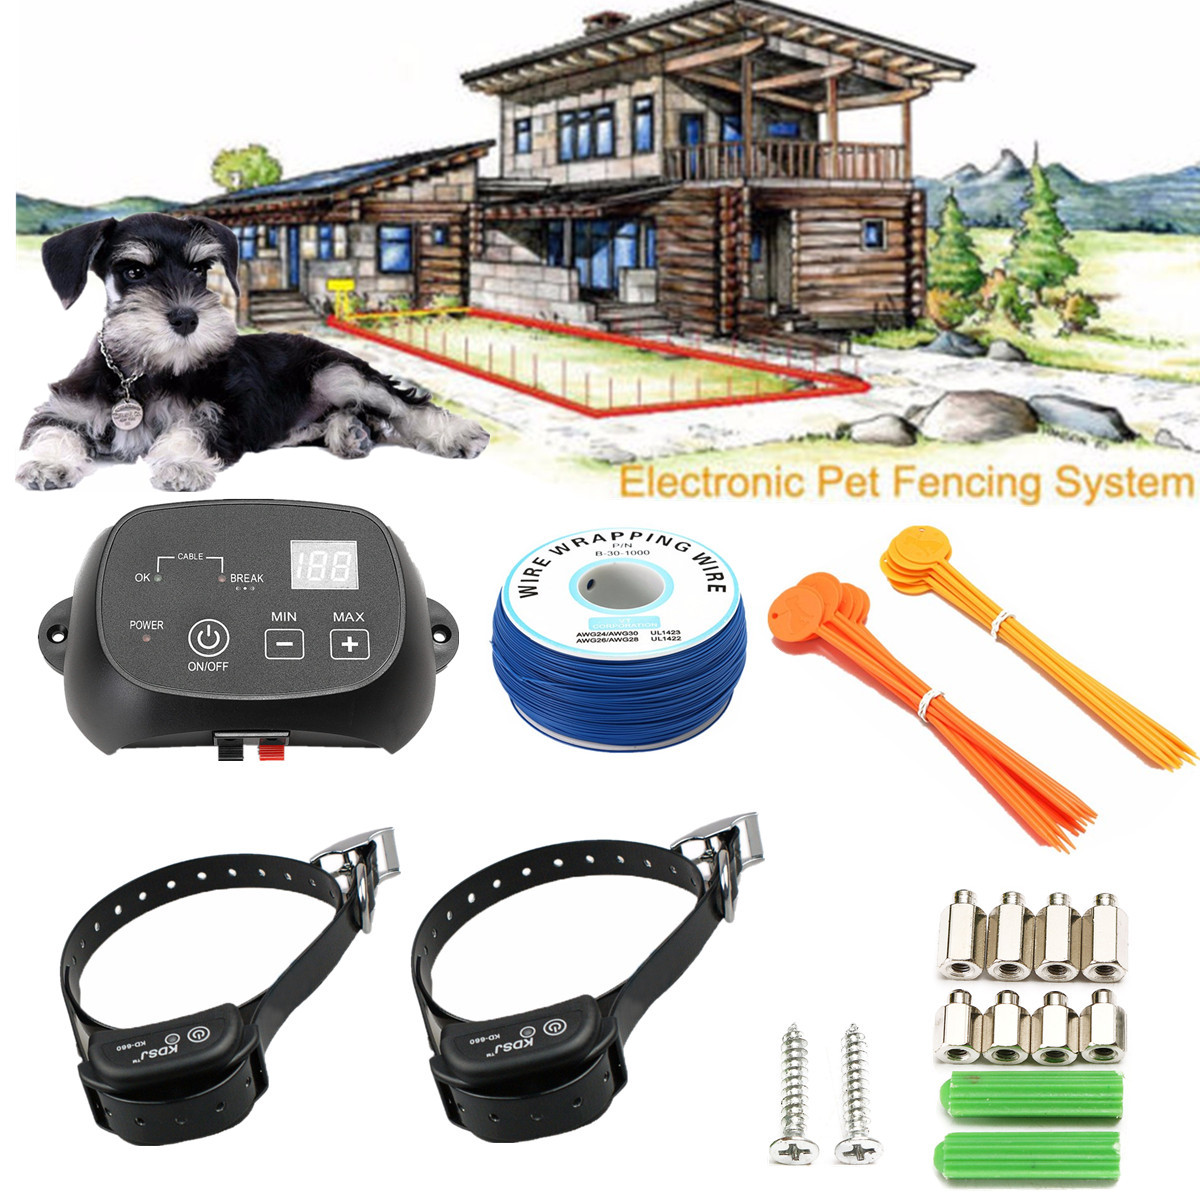 wireless nowire remote electronic pet 2 dog fence waterproof 2 collars fencing training